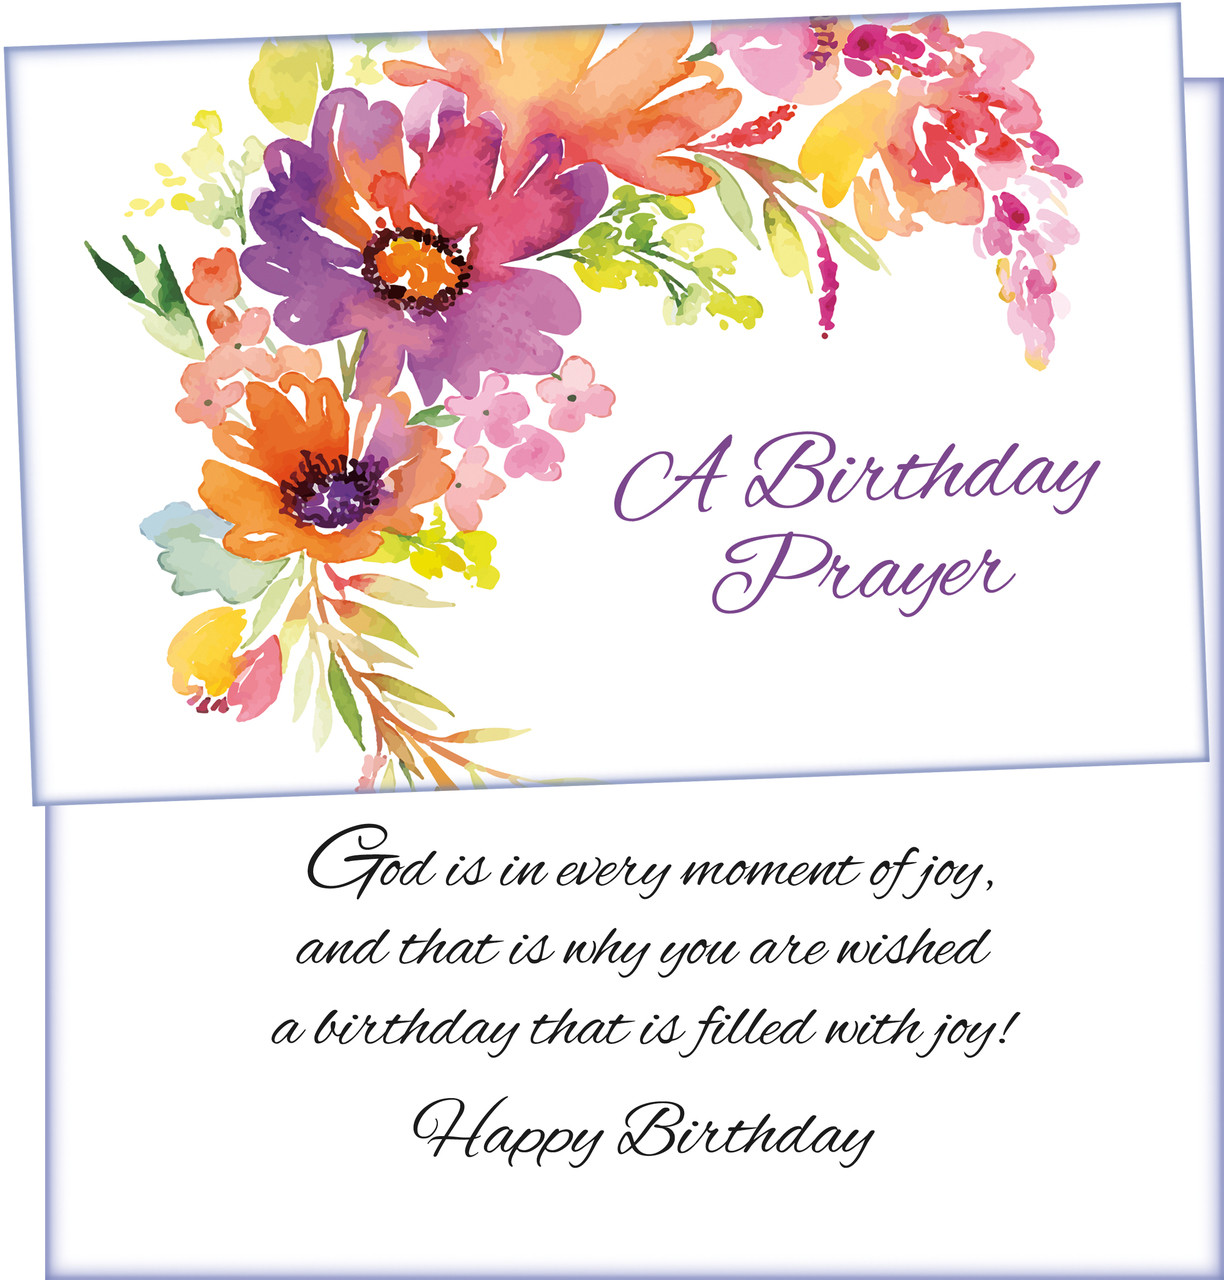 94712 six religious birthday greeting cards with six envelopes